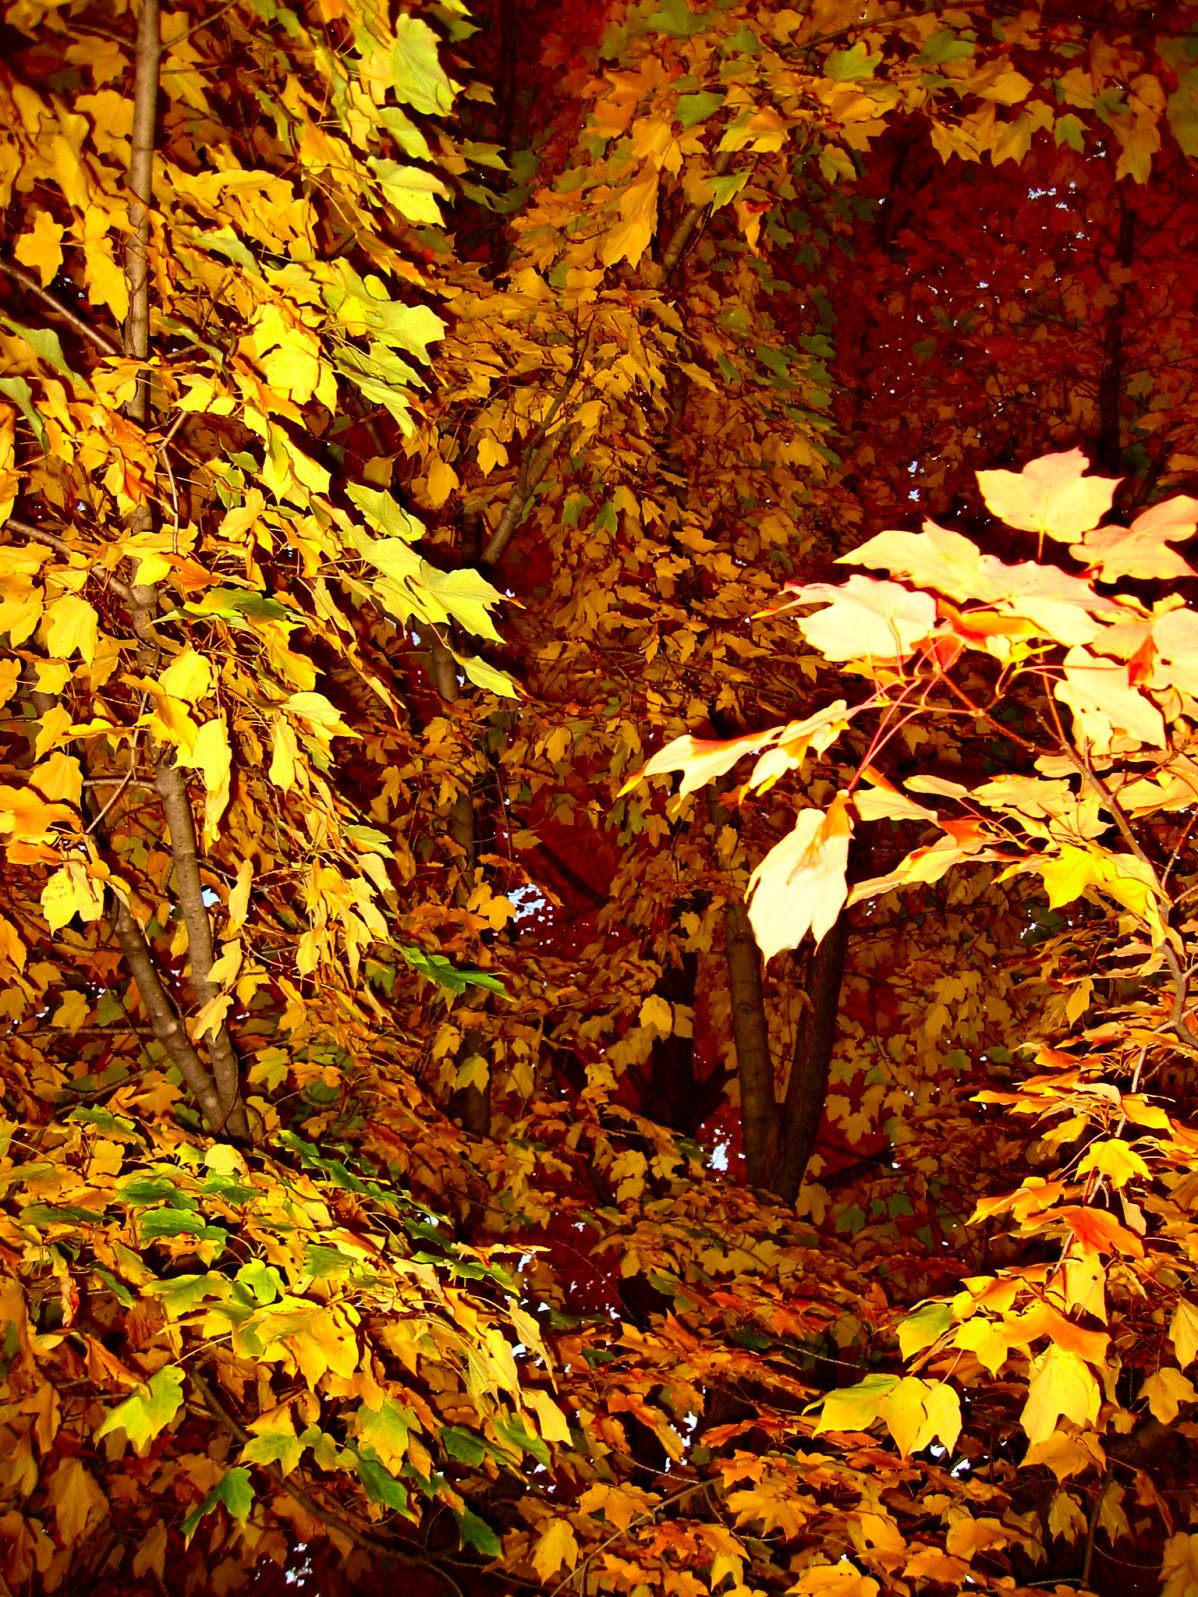 Wiconsin Autumn Photo - soul-amp.com